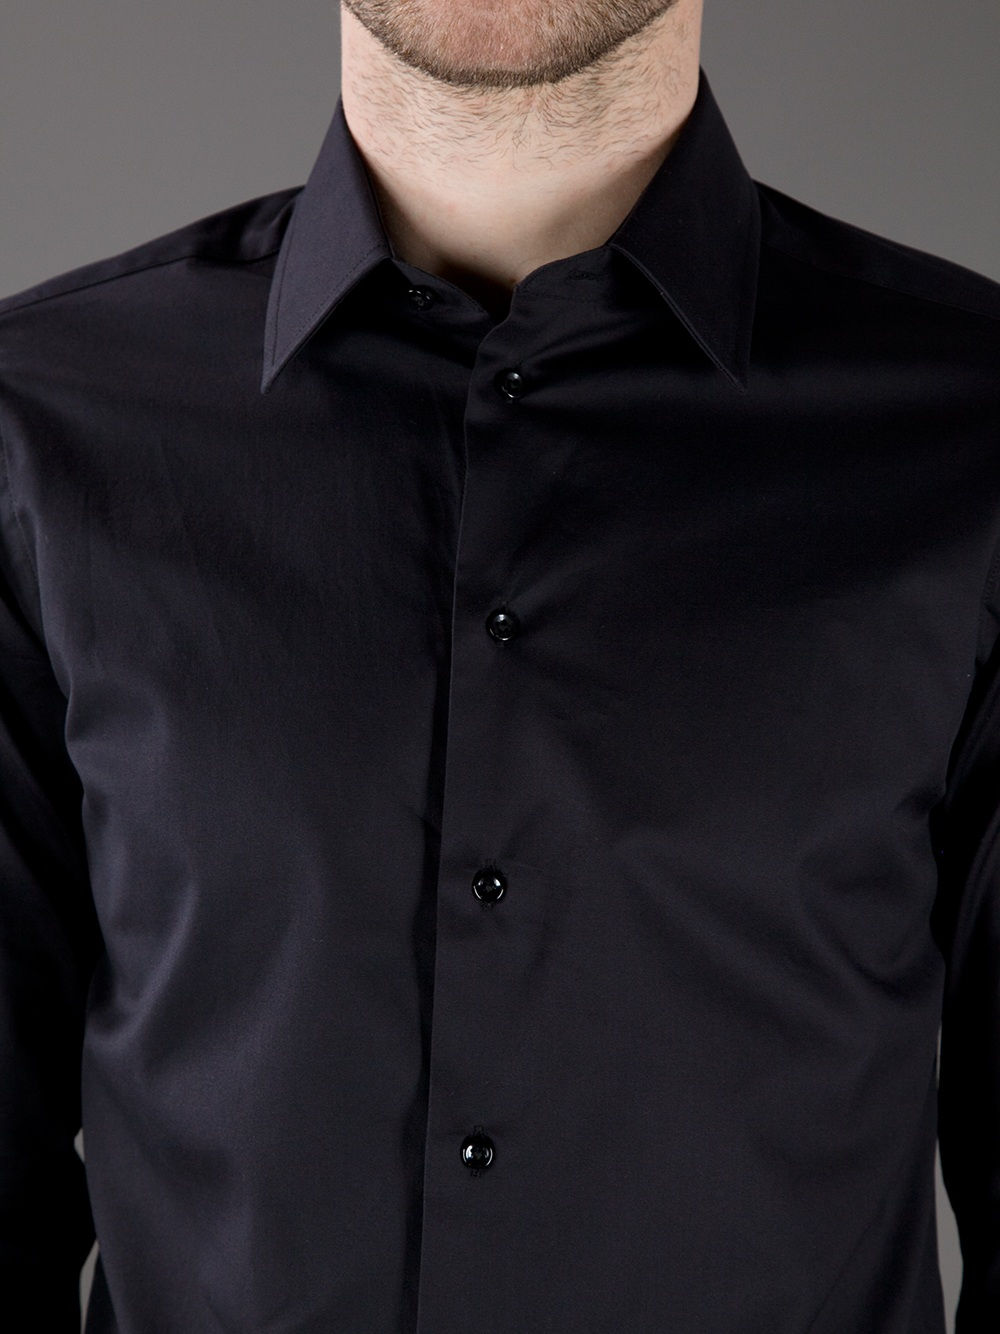 Lyst Armani Button Down Shirt In Black For Men